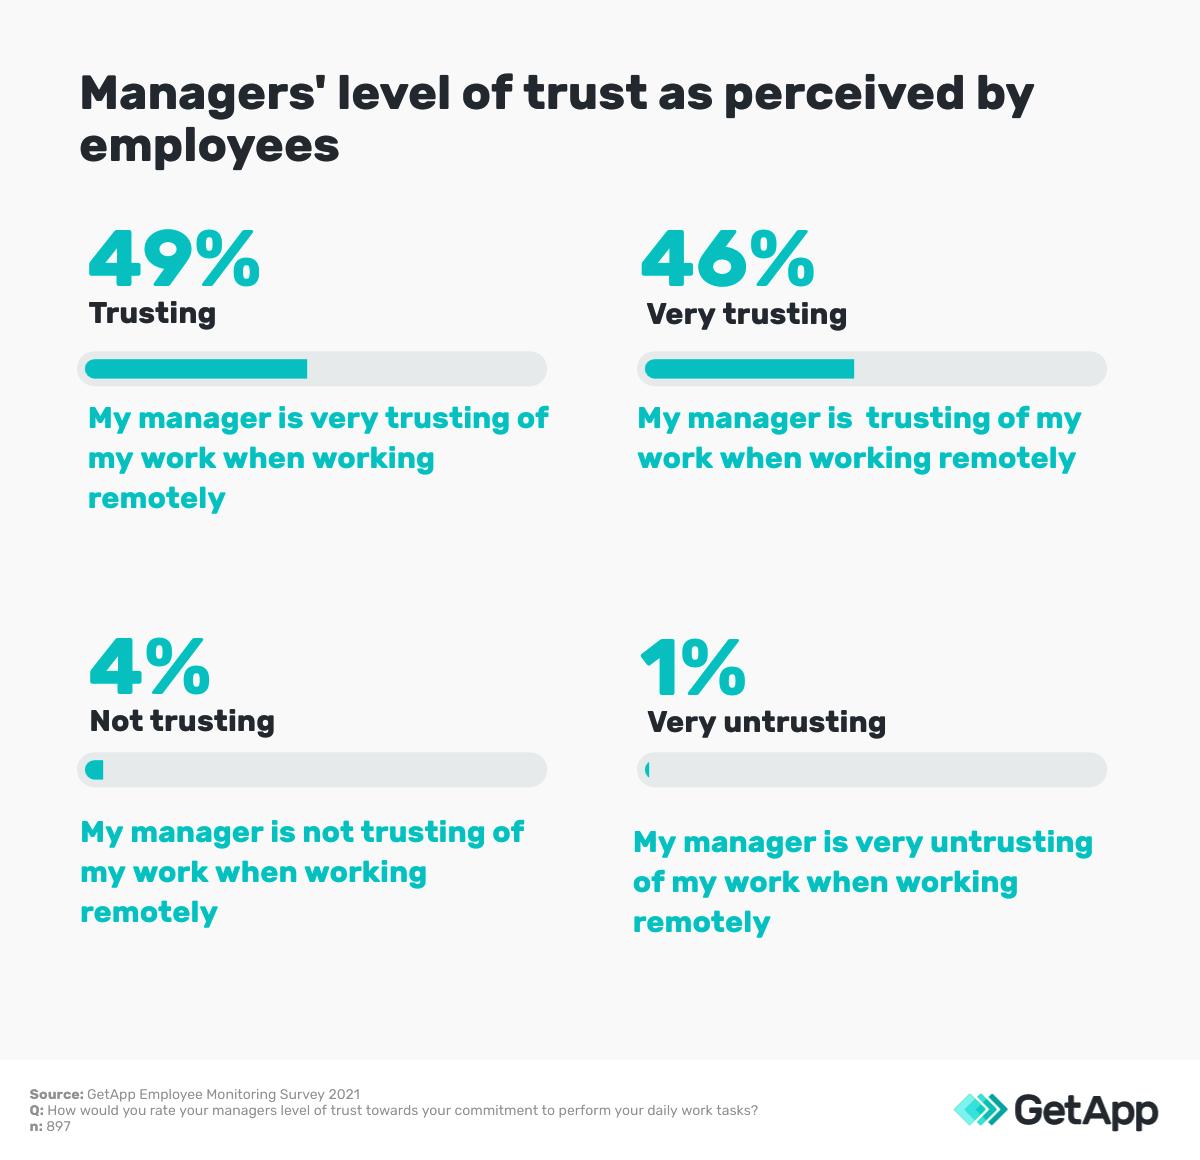 managers' level of trust